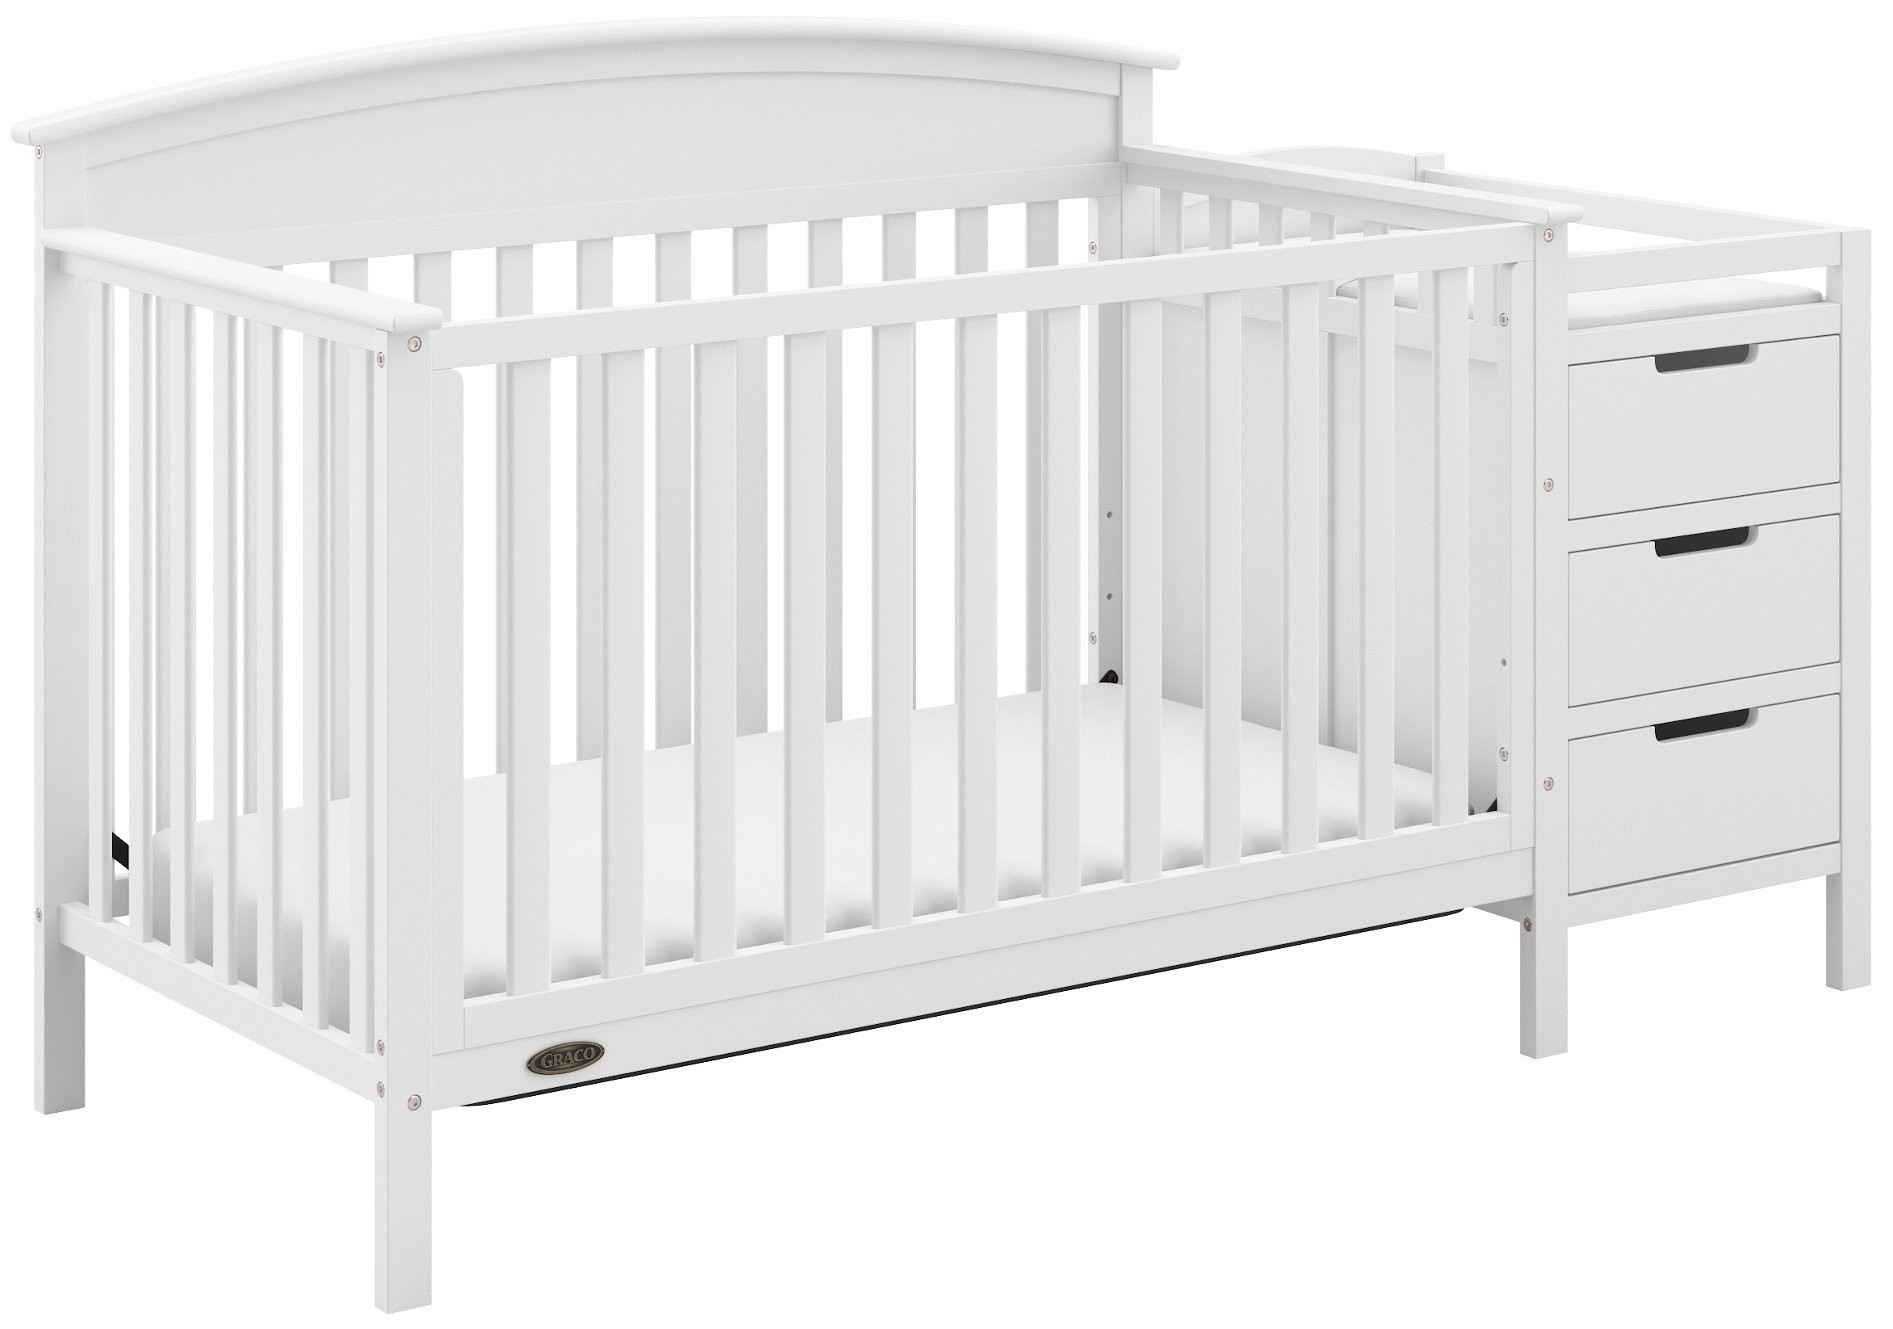 Storkcraft Graco Benton 4 In 1 Convertible Crib Crib Toddler Bed Daybed Full Size Bed 04530 211 Model White Color